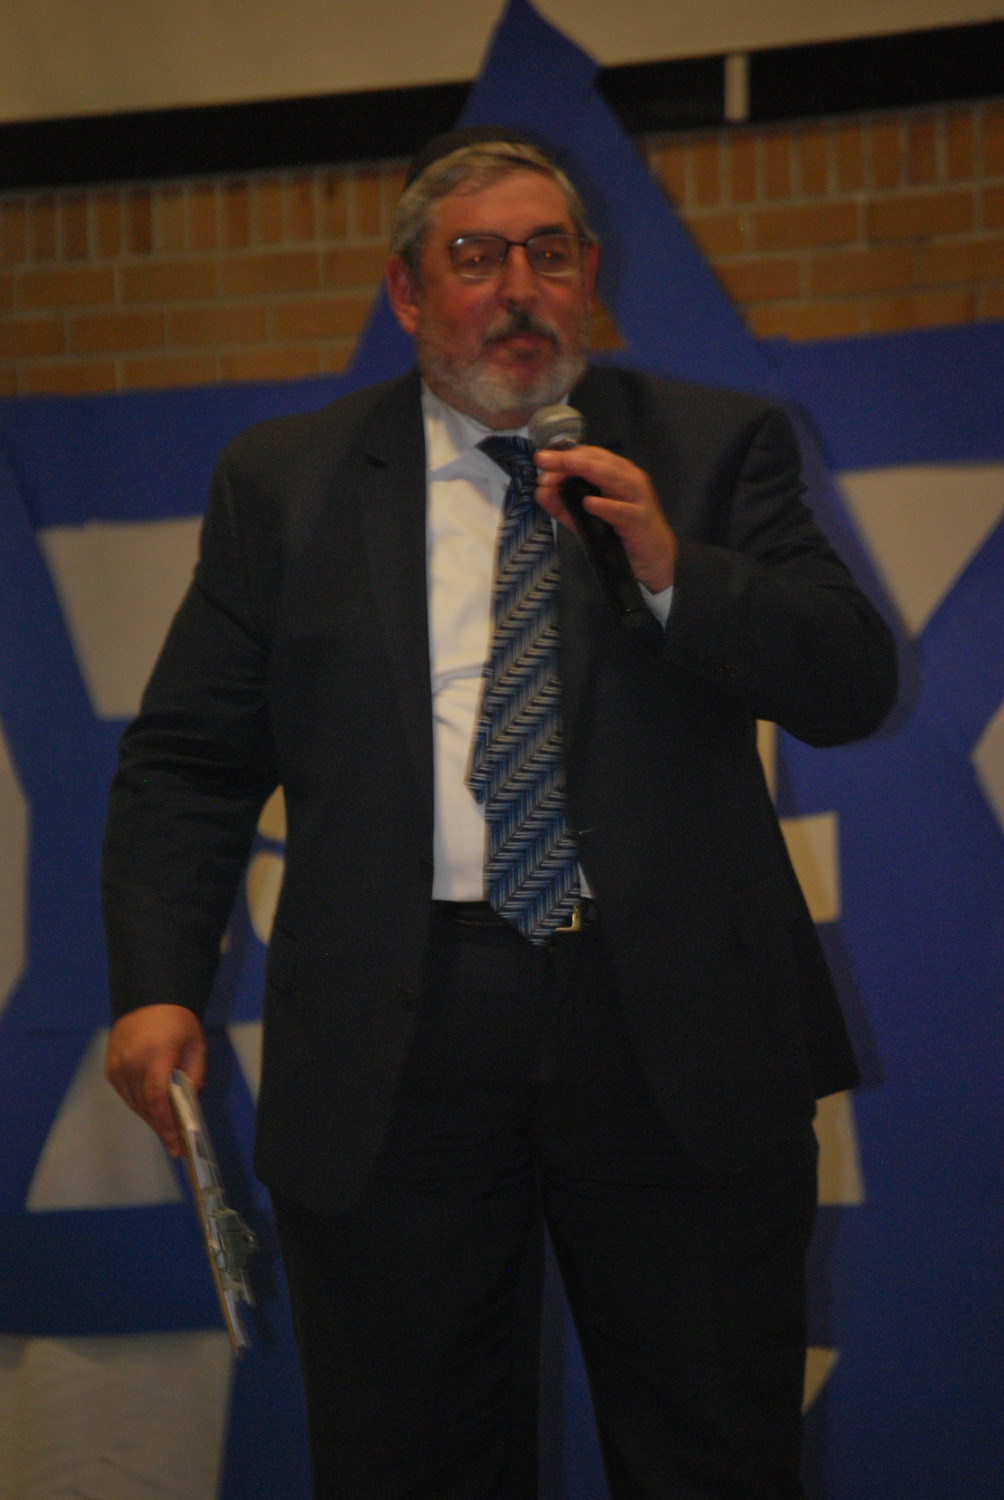 Lower School Hebrew Academy of Long Beach Principal Richard Altabe quieted the audience at the school's Israel celebration on April 19.